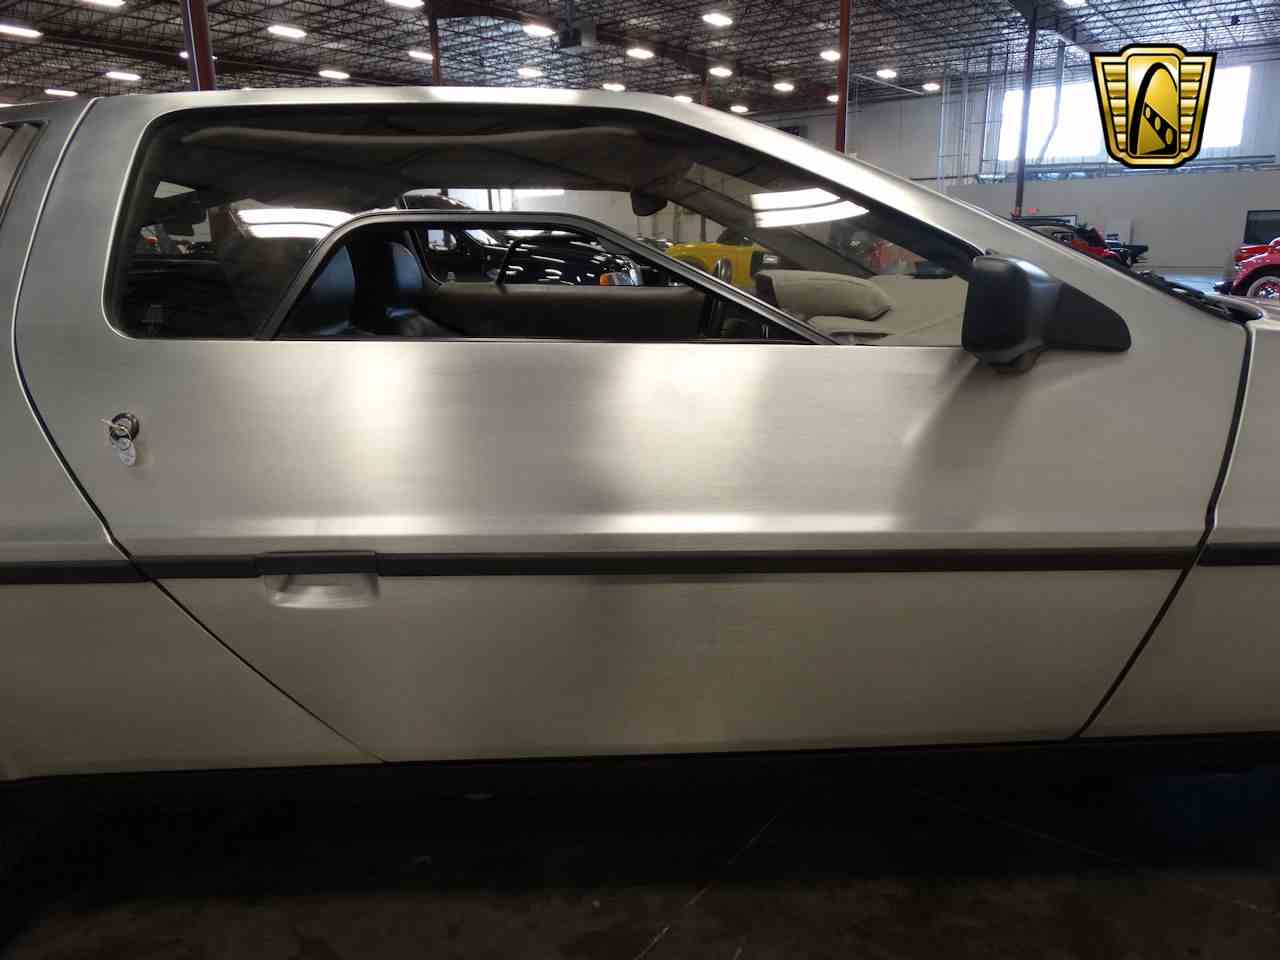 Large Picture of '81 DeLorean DMC-12 - $29,995.00 Offered by Gateway Classic Cars - Nashville - M2L4